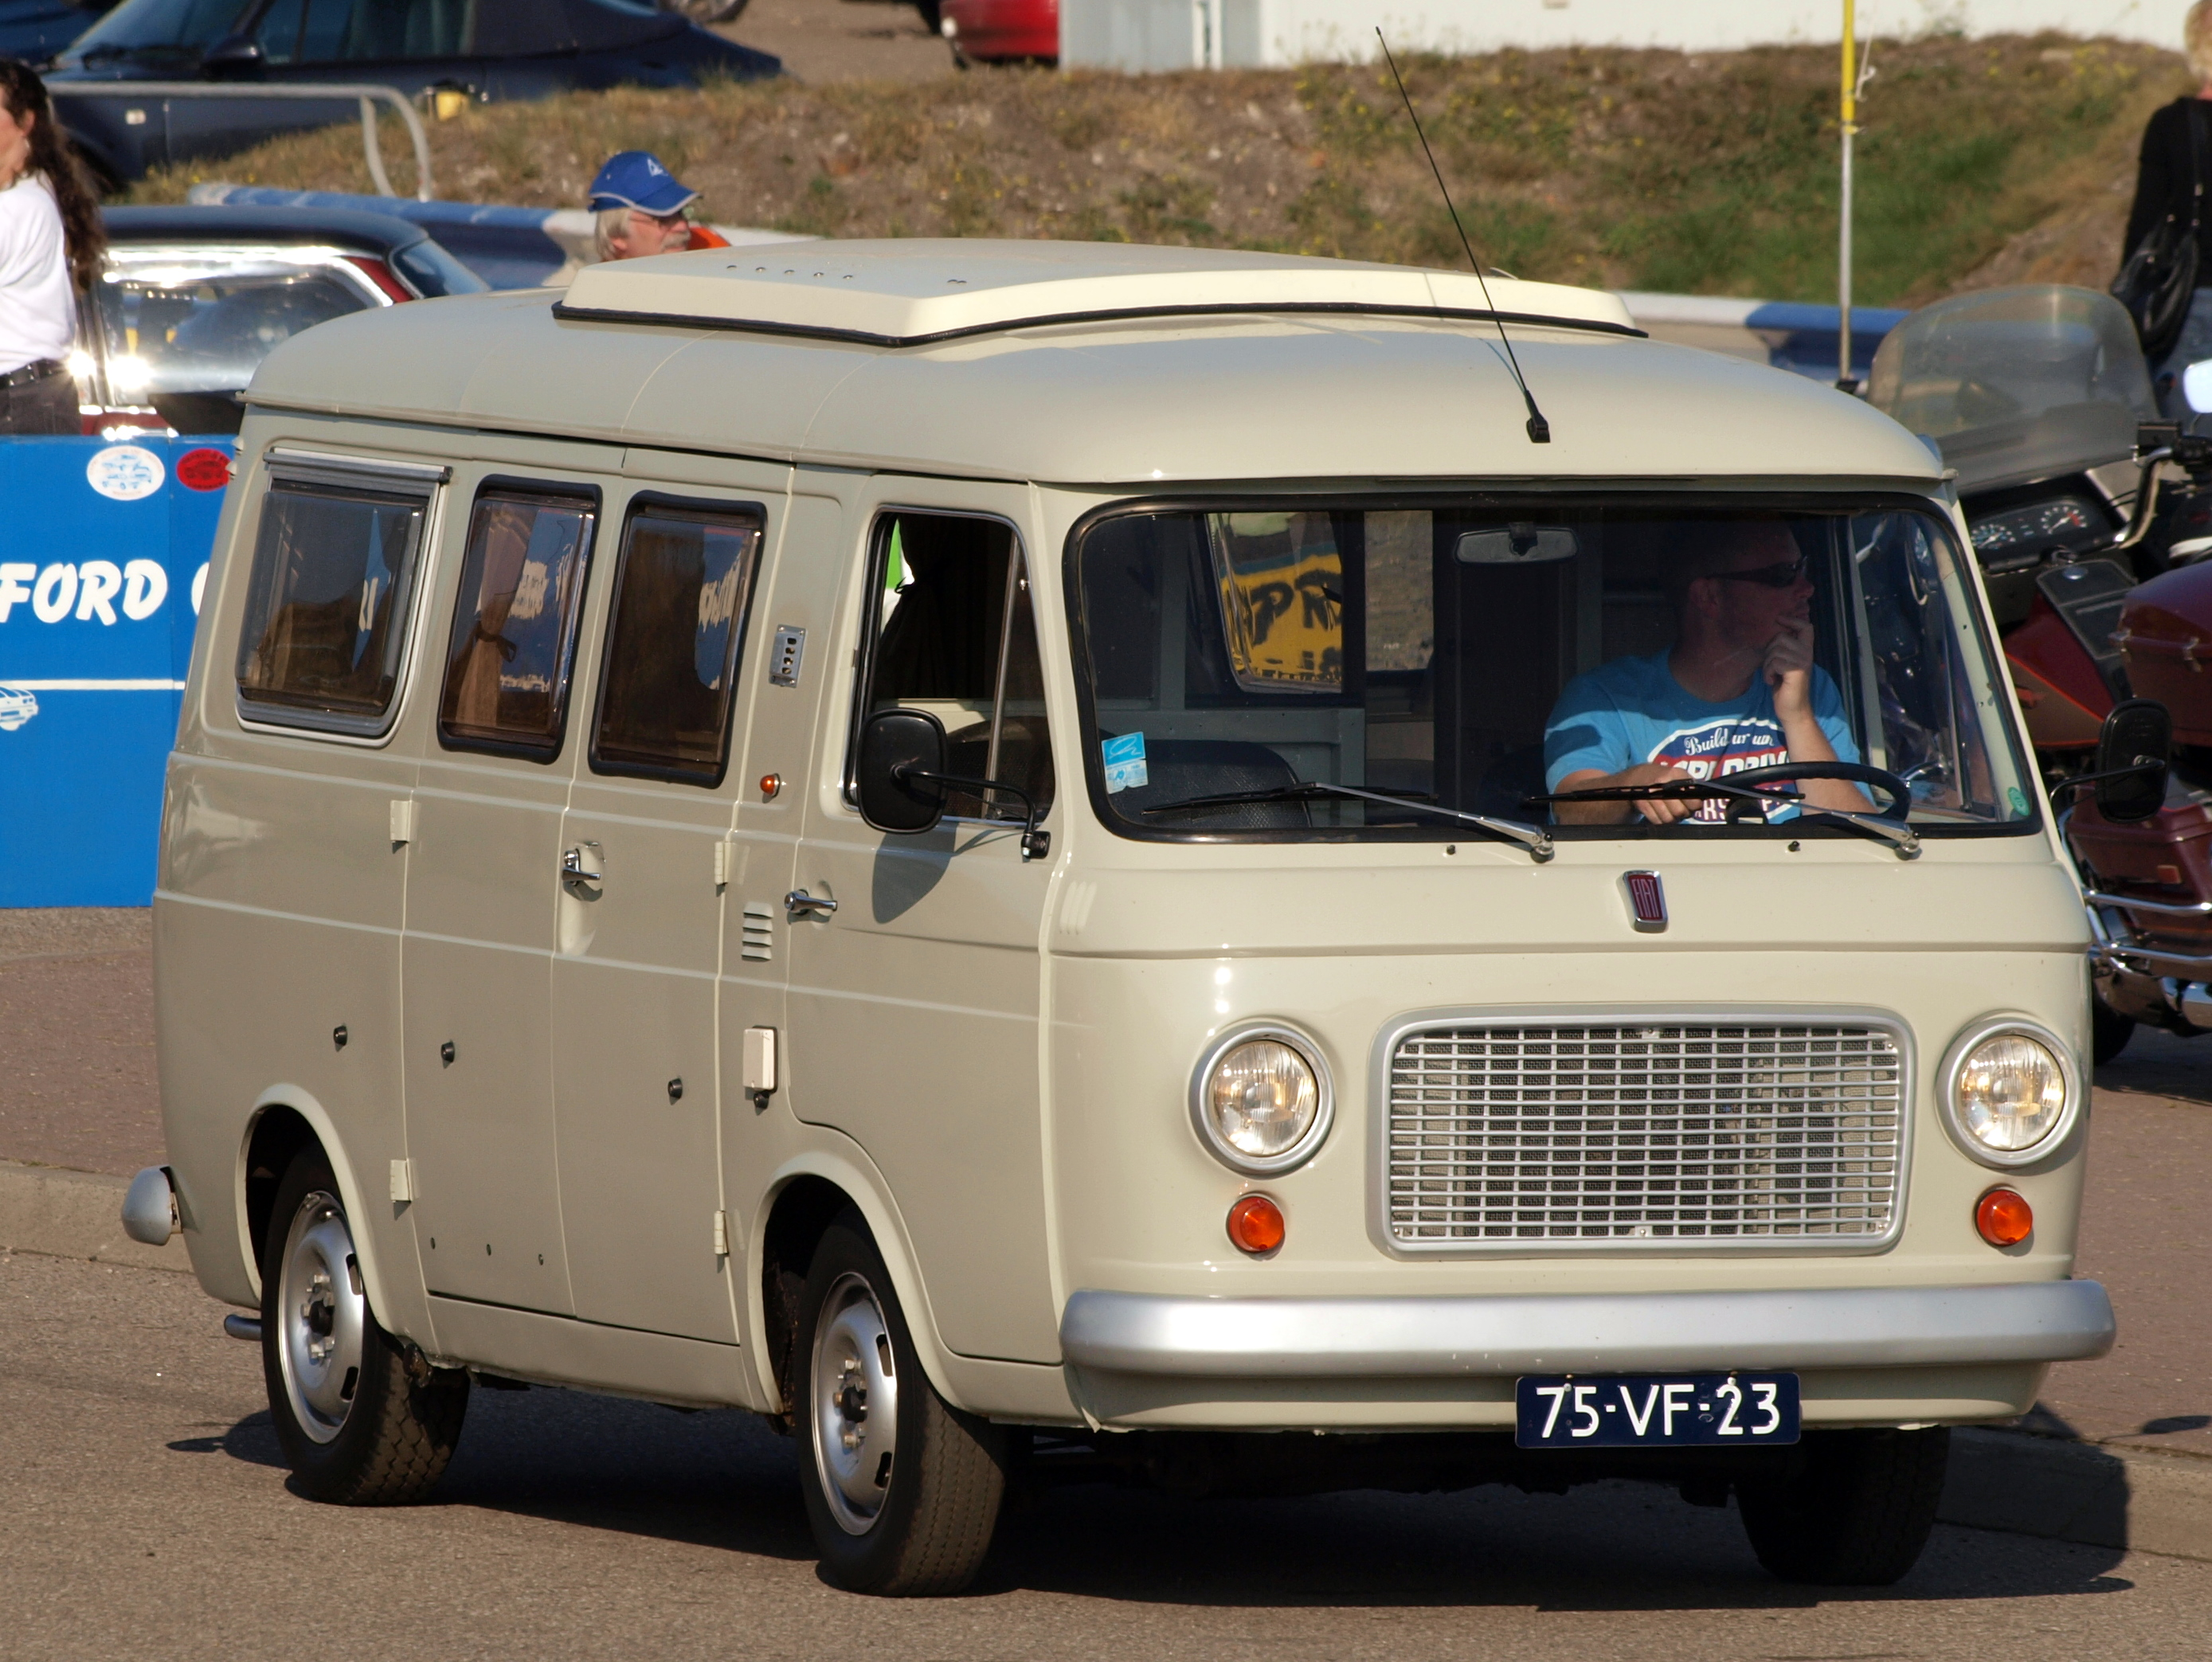 File:Fiat 238 dutch licence registration 75-VF-23 pic01.jpg